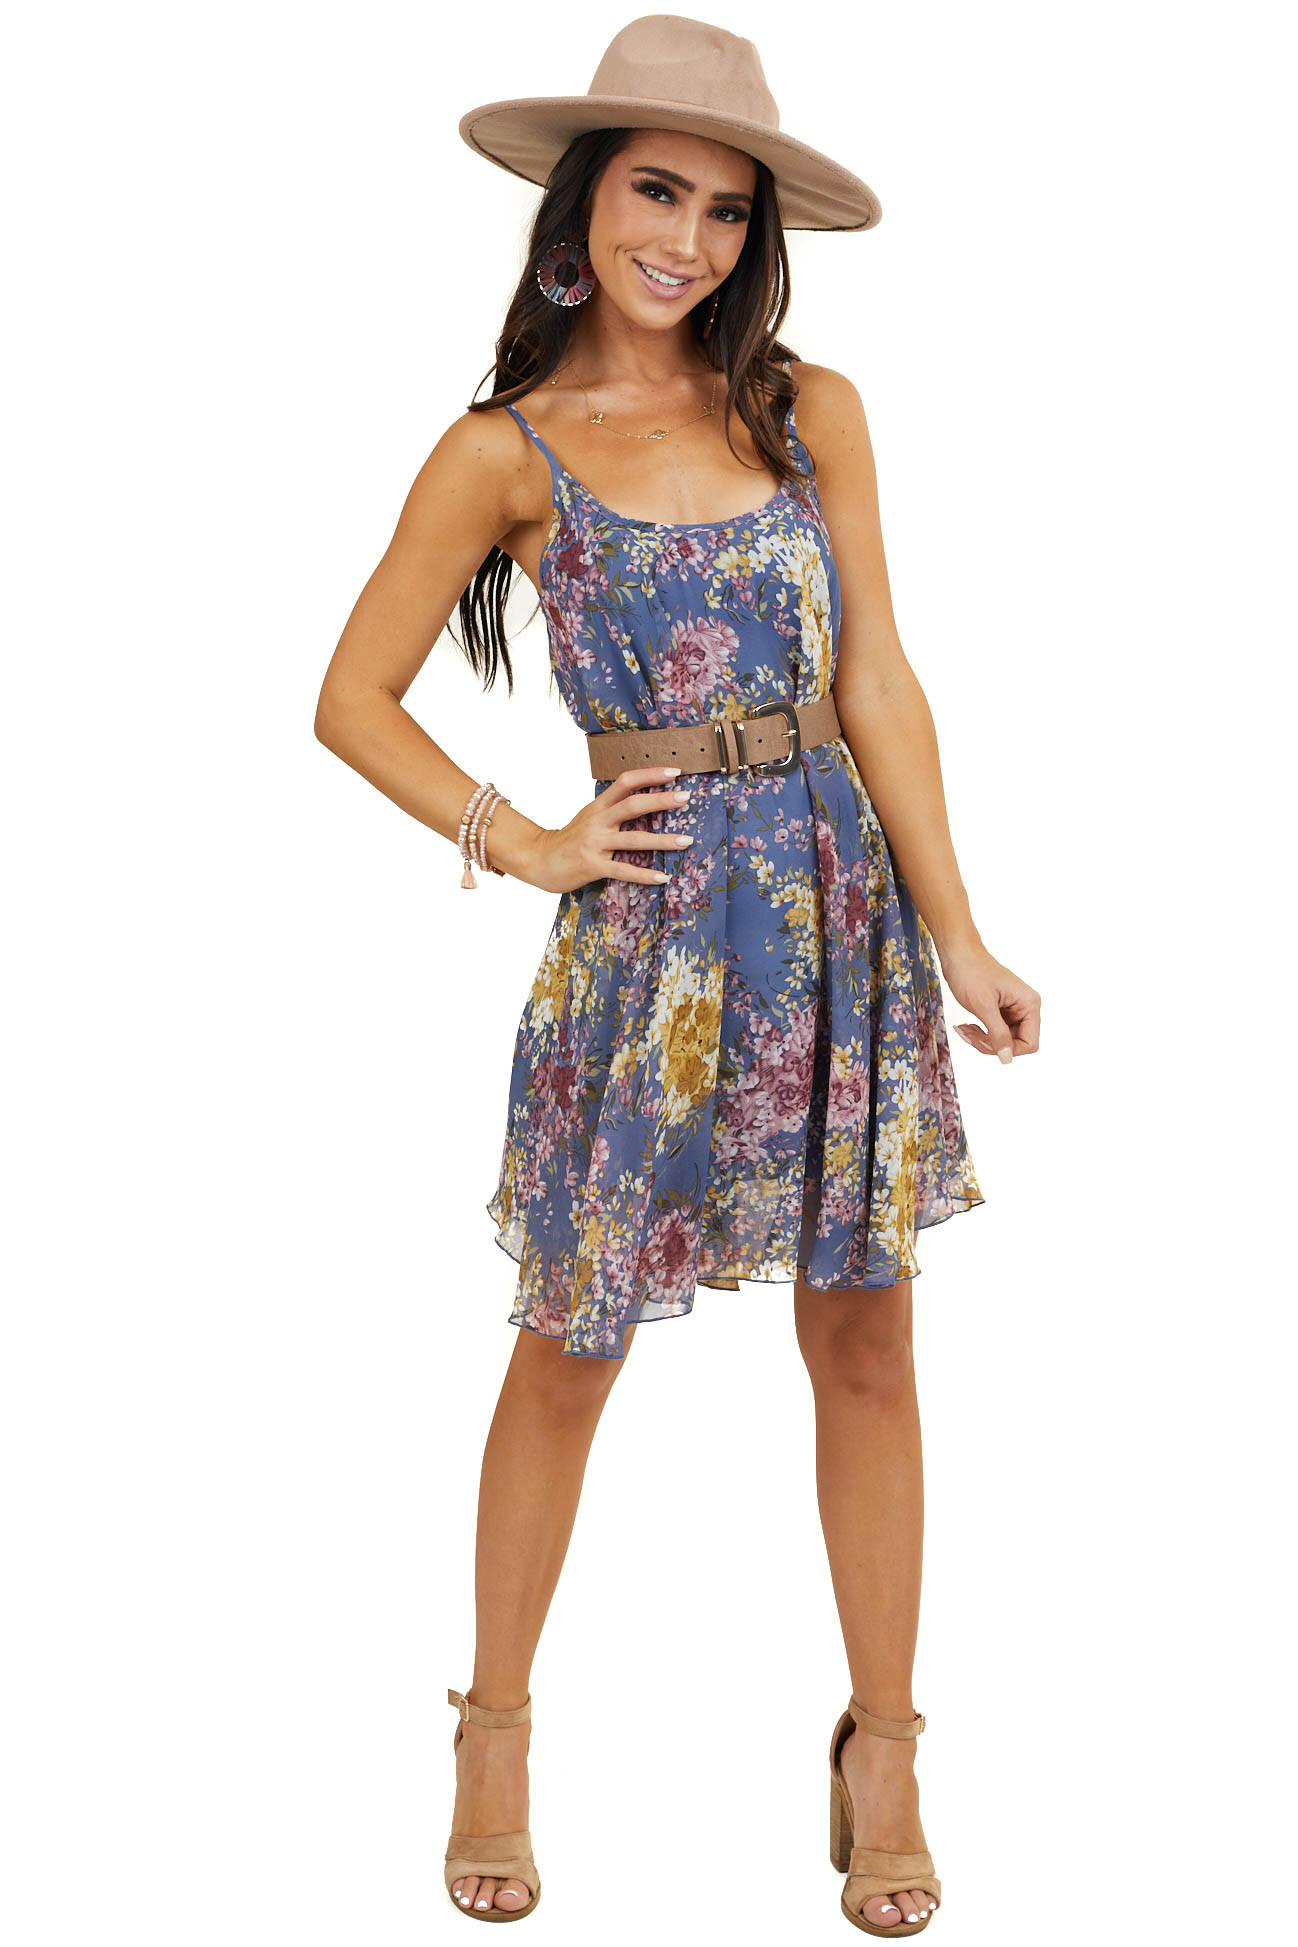 Periwinkle Floral Print Short Dress with Spaghetti Straps